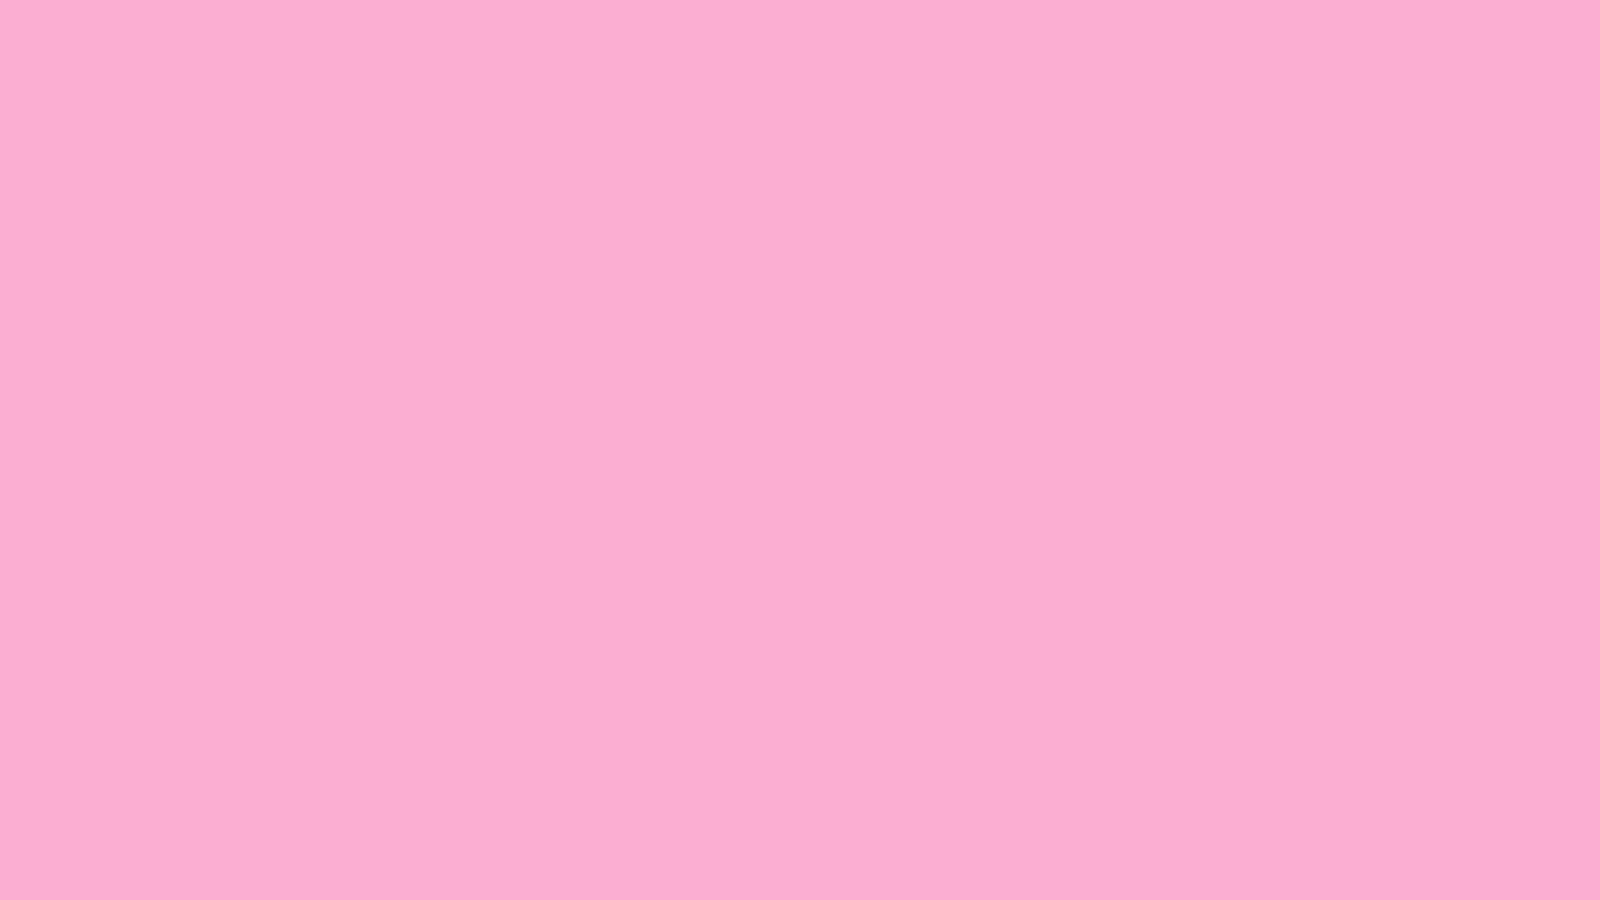 1600x900 Lavender Pink Solid Color Background